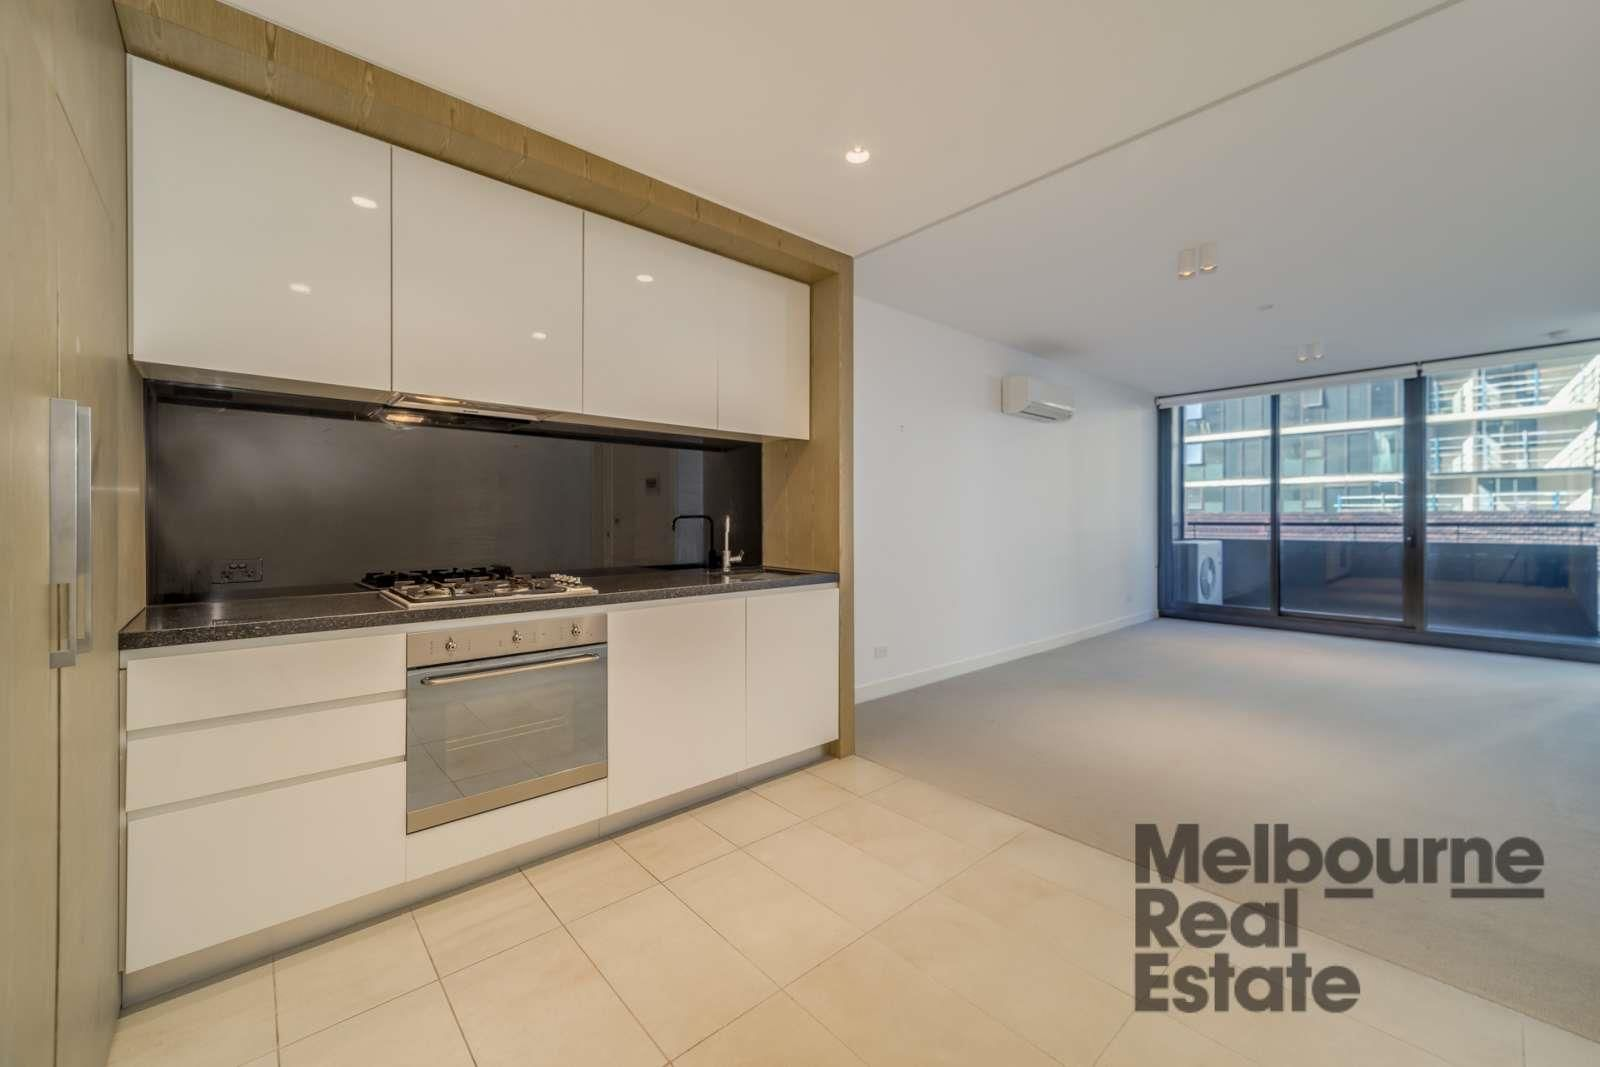 209/74 Queens Road, Melbourne 3004 VIC 3004, Image 0